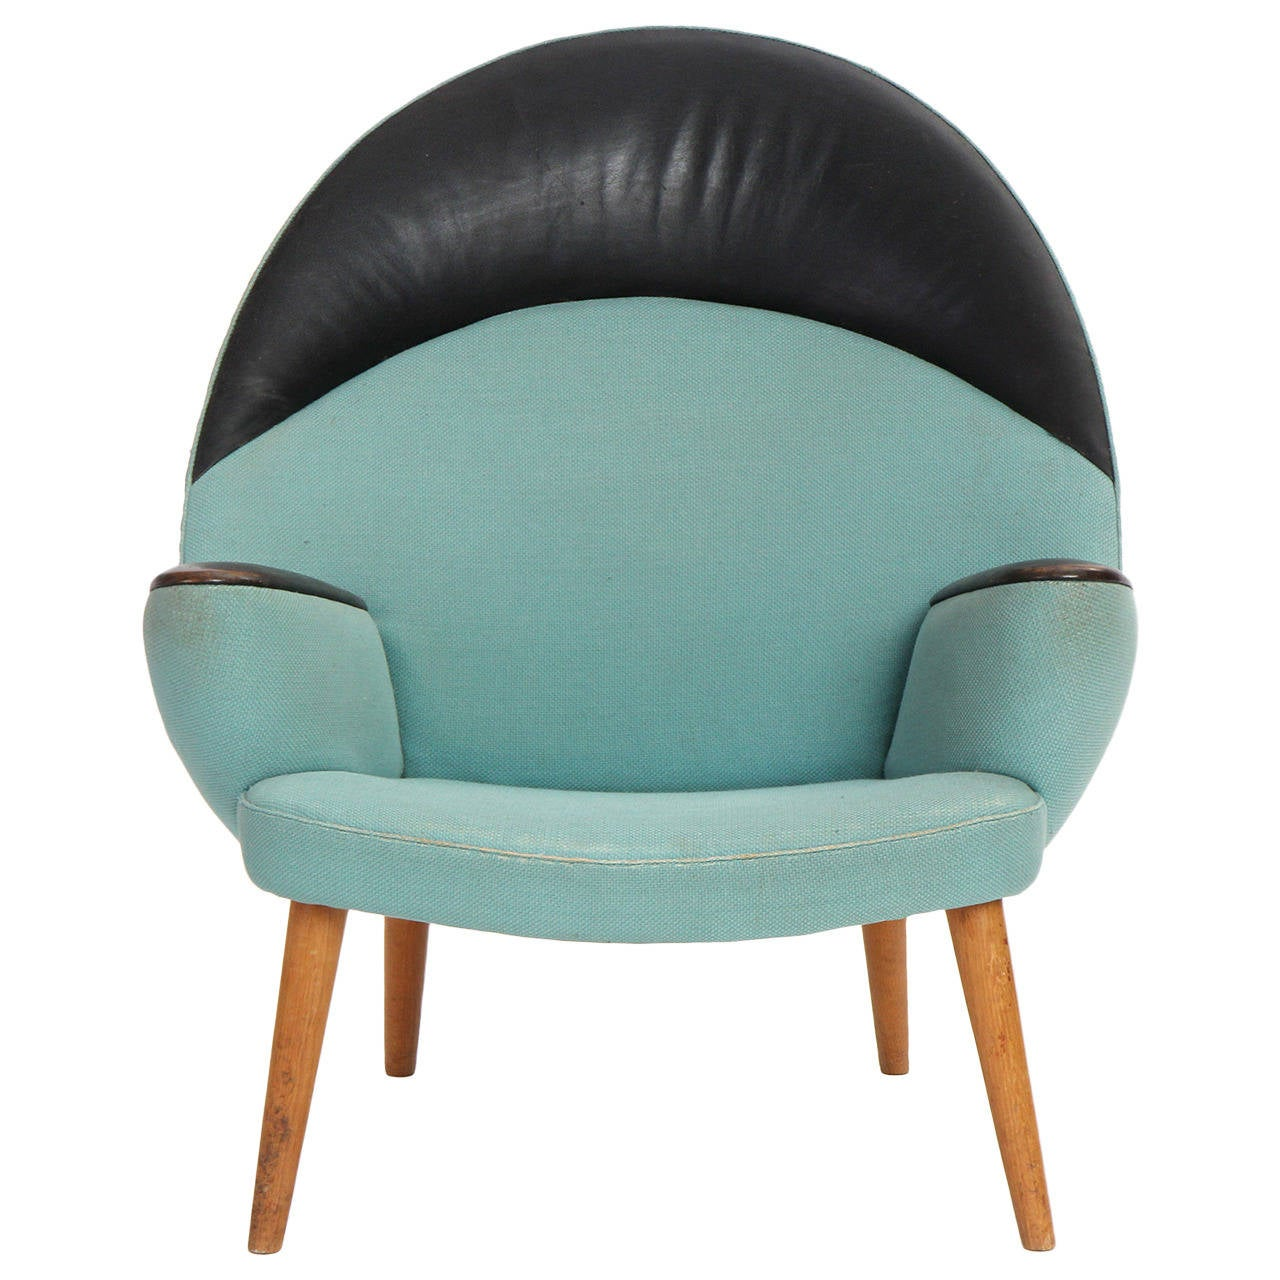 Upholstered Peacock Chair By Hans J Wegner For Sale At